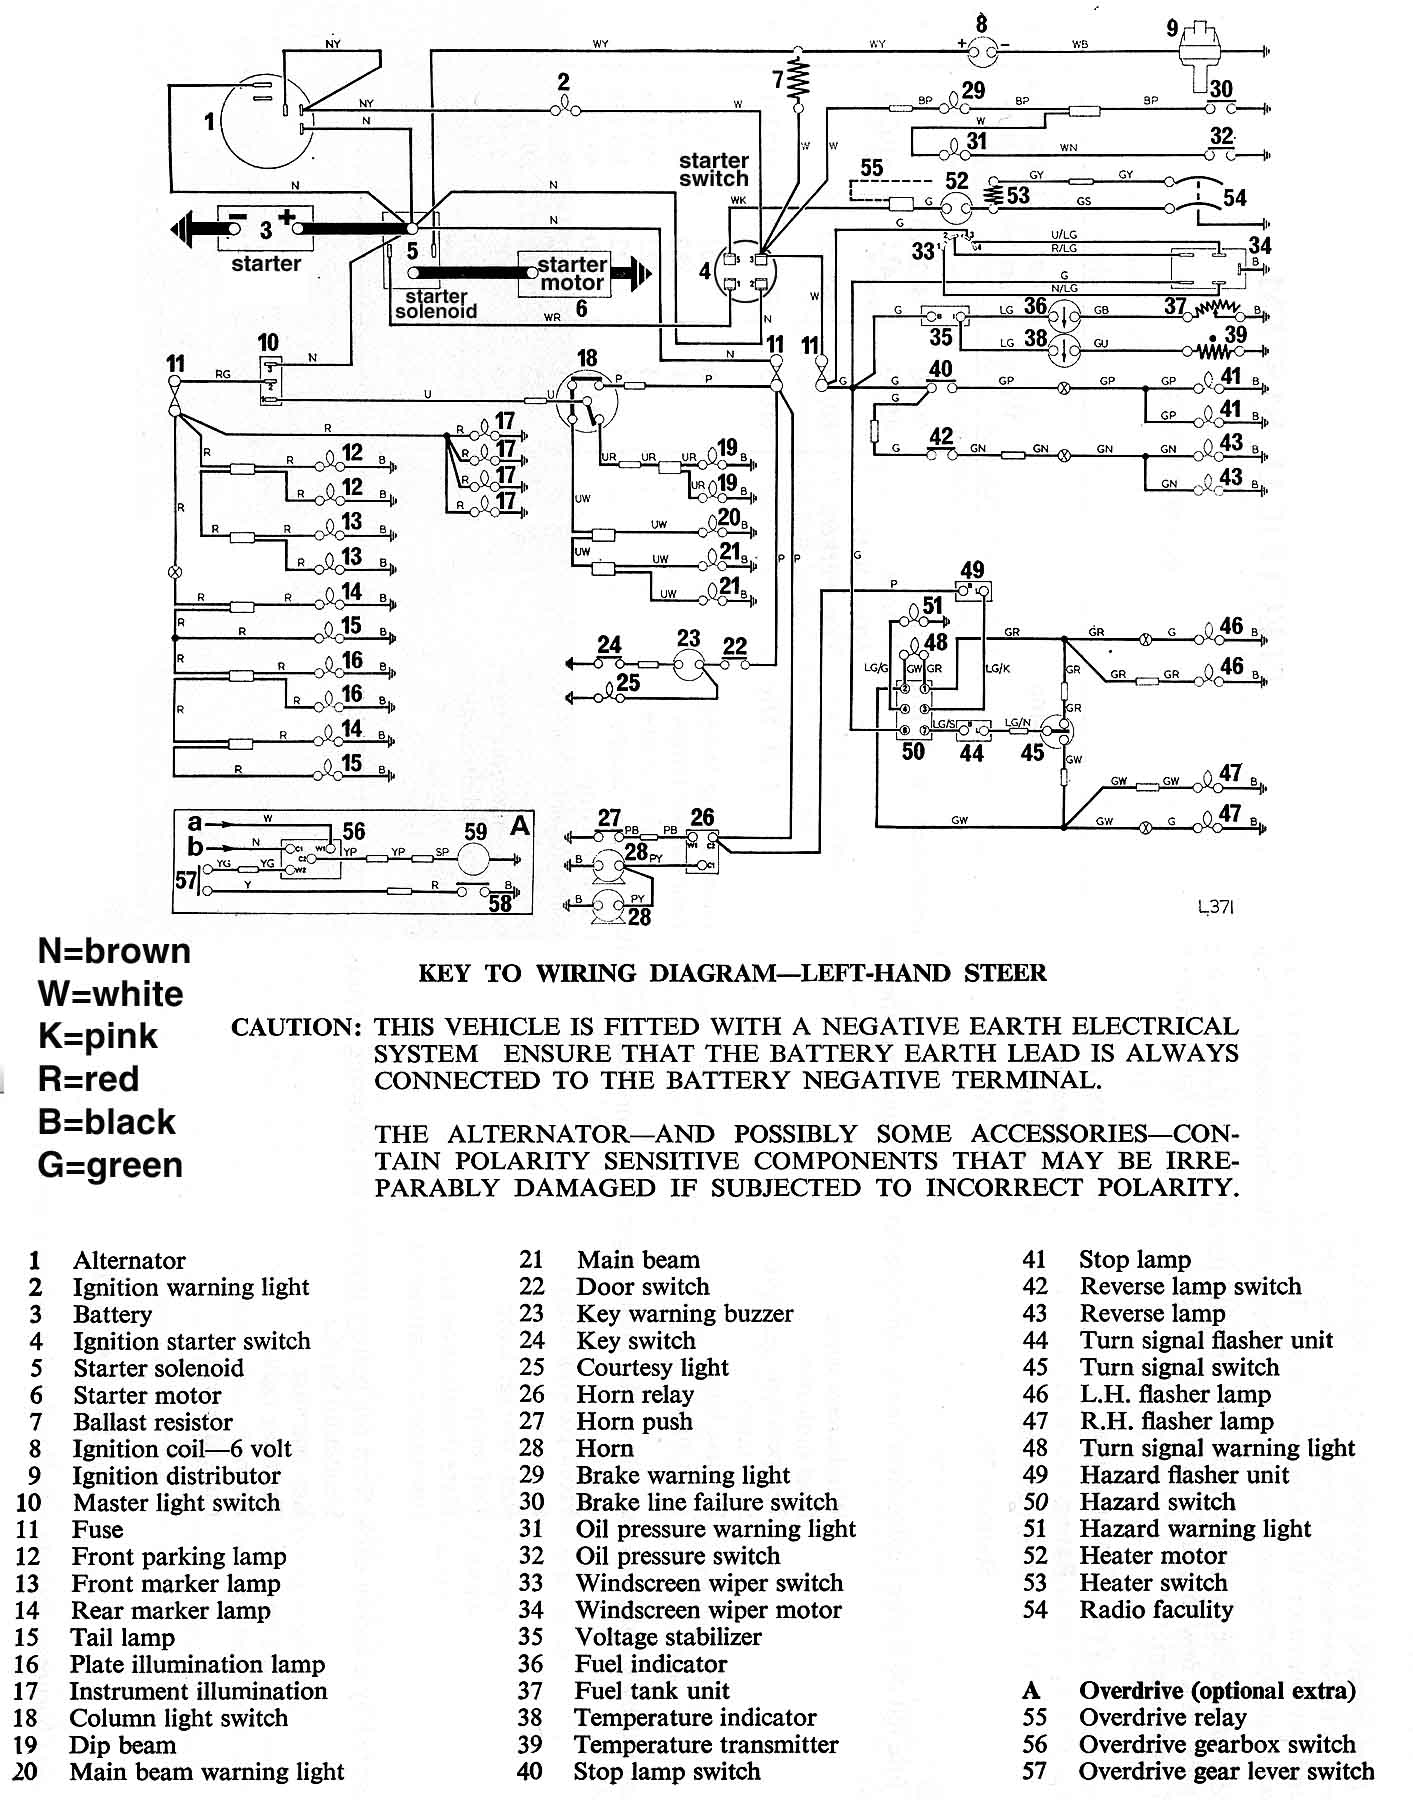 MKIVwire mk4 wiring diagram mk4 tdi wiring diagram \u2022 wiring diagrams j  at cos-gaming.co